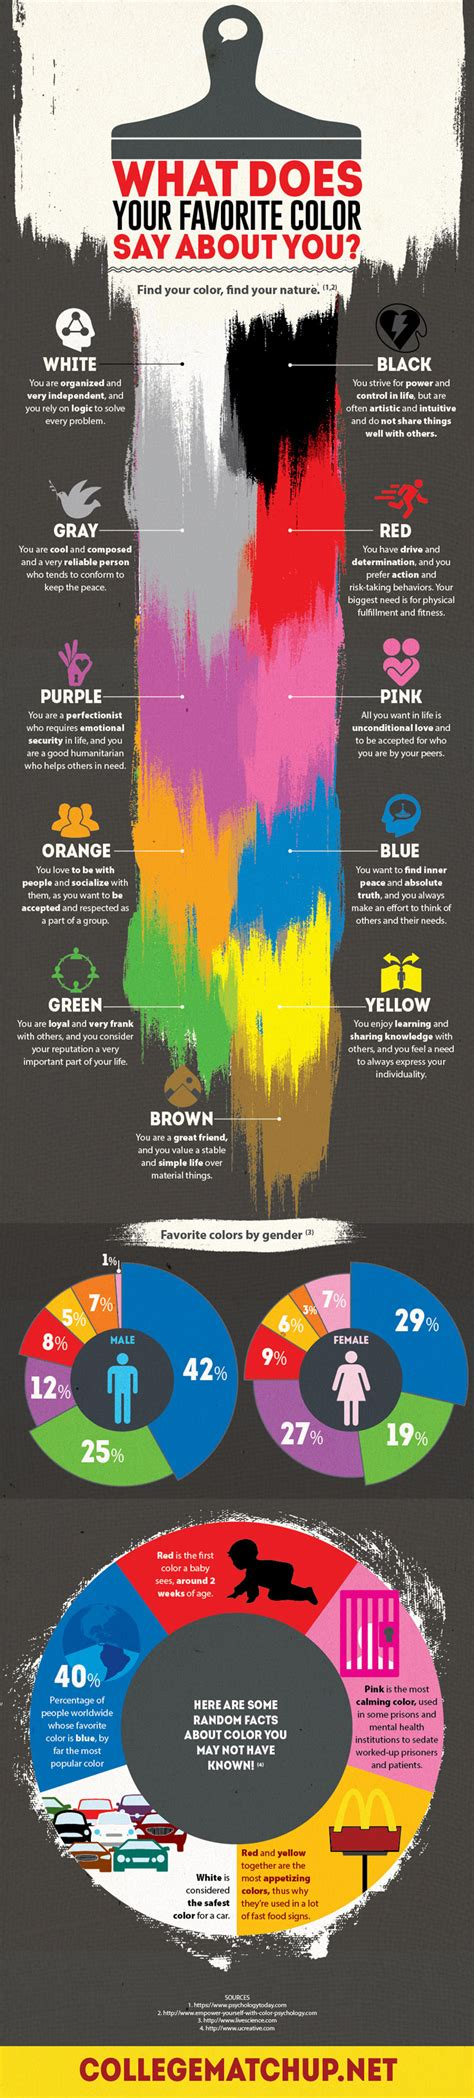 what your favorite color says about you what does your favorite color say about you infographic